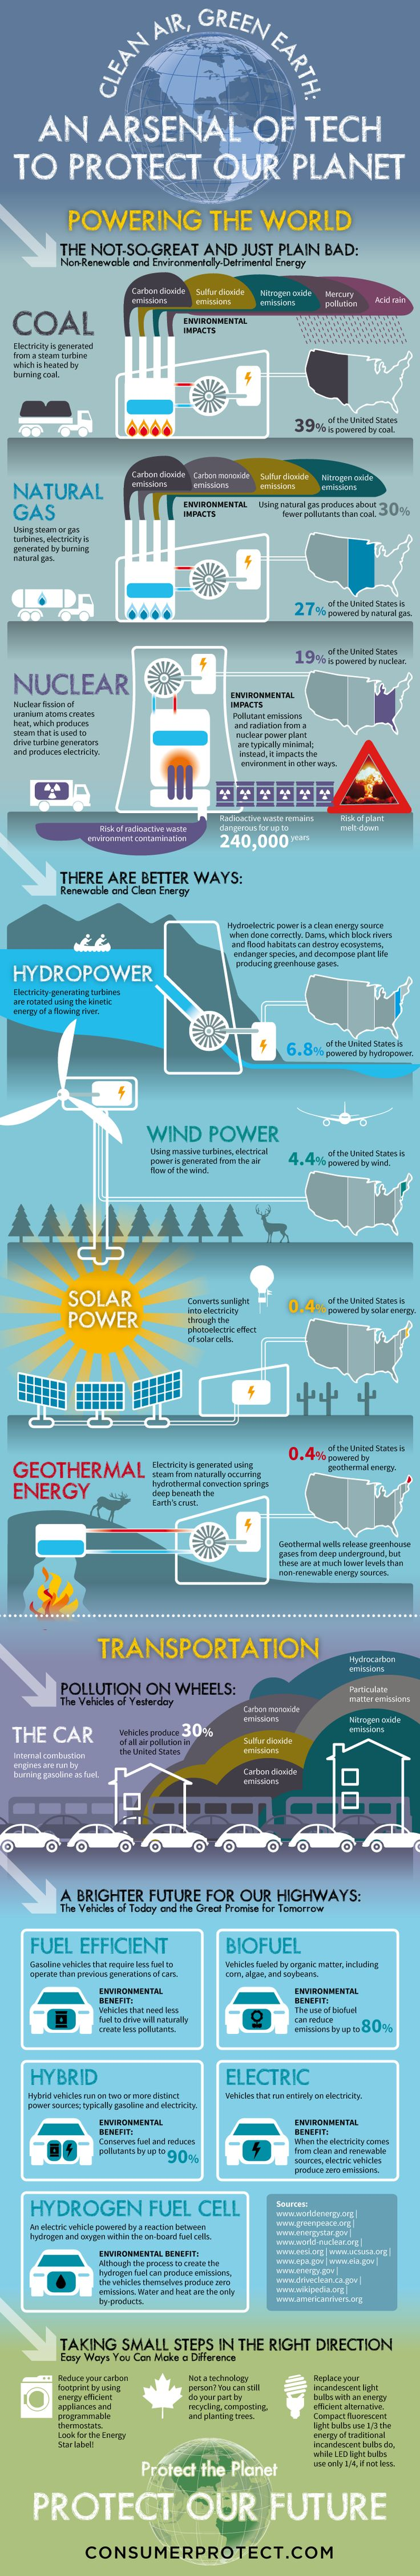 Clean Air, Green Earth: An Arsenal of Tech to Protect Our Planet #infographic #Environment